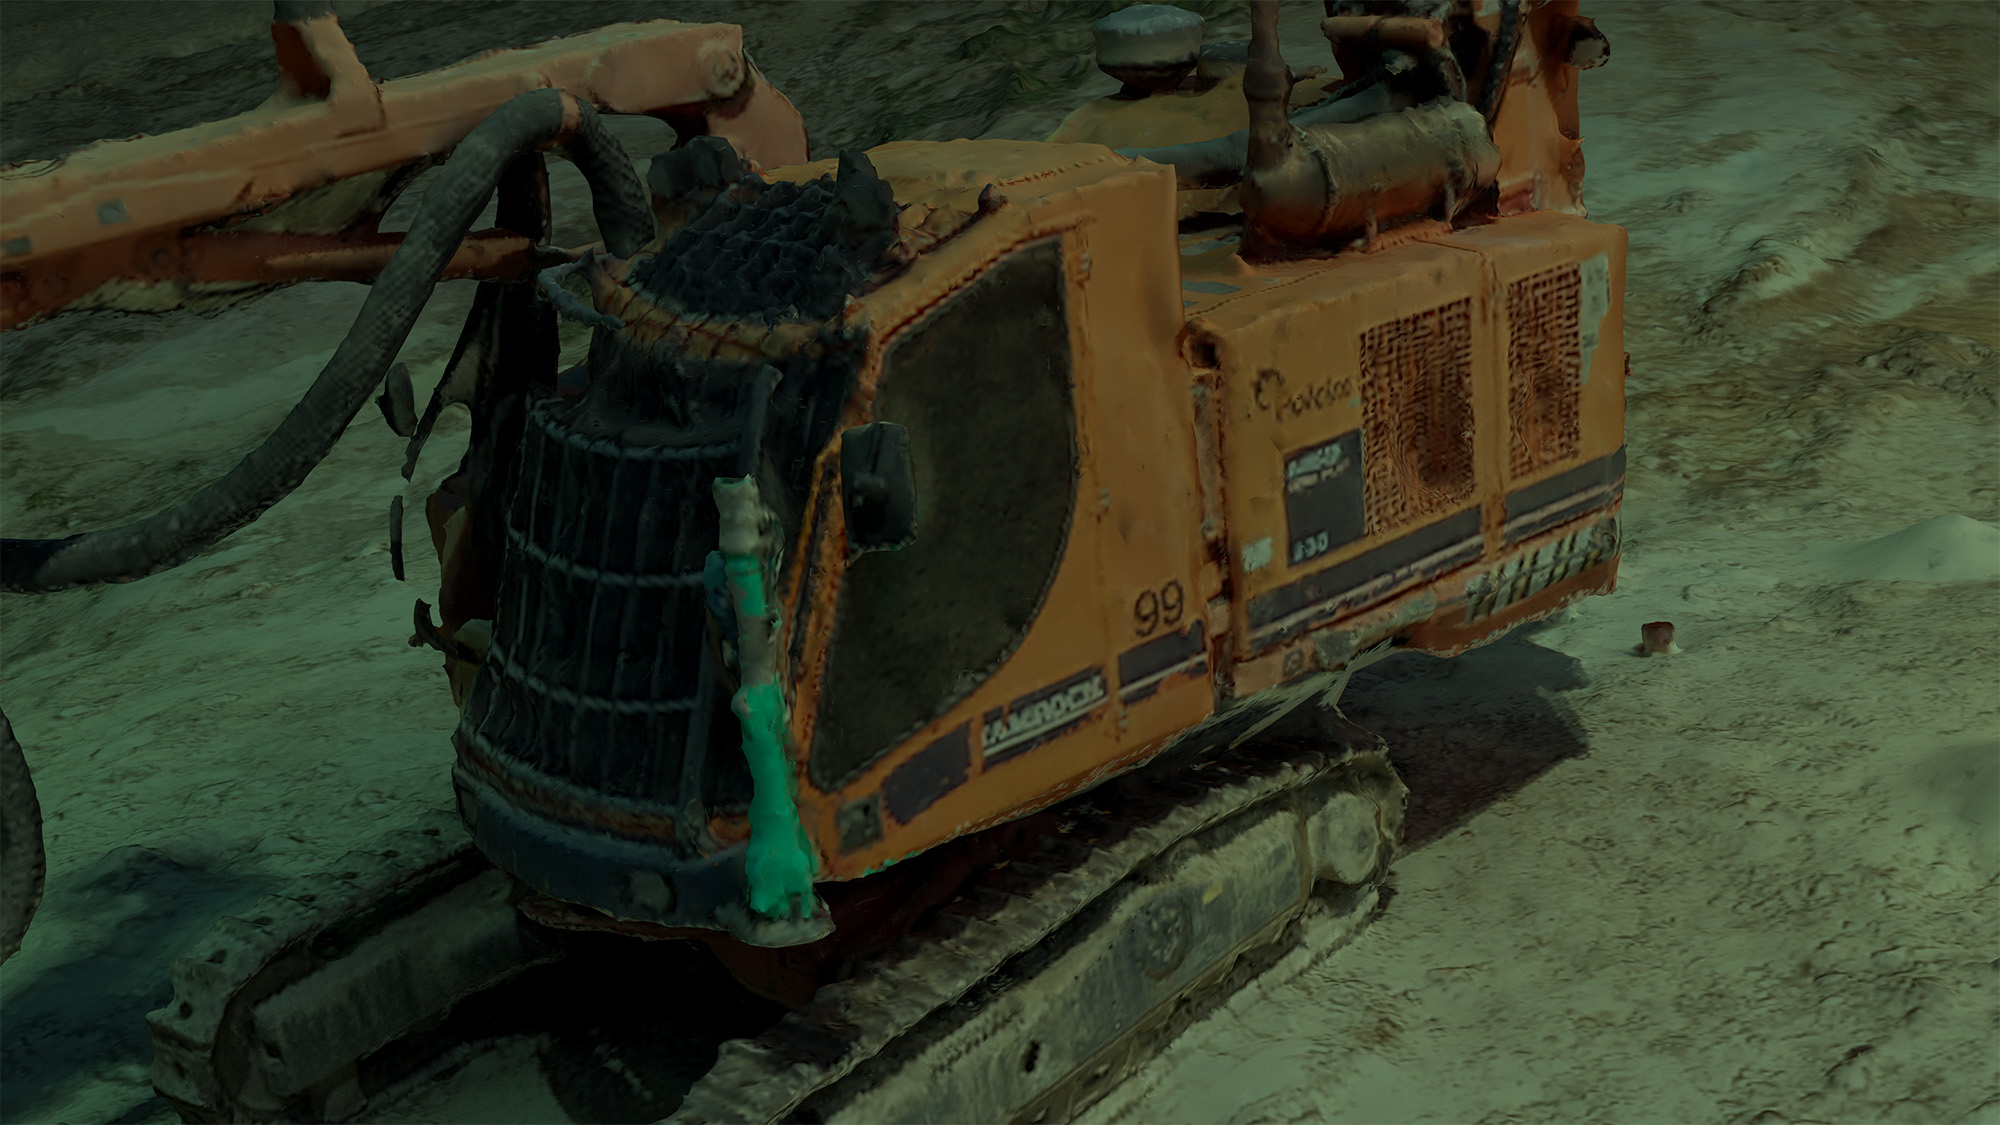 CGI visual of an excavator under water using photogrammetry-based 3D modeling, technology from drone perspective, developed in collaboration with Valle Medina and Benjamin Reynolds (Pa.LaC.E), 2020